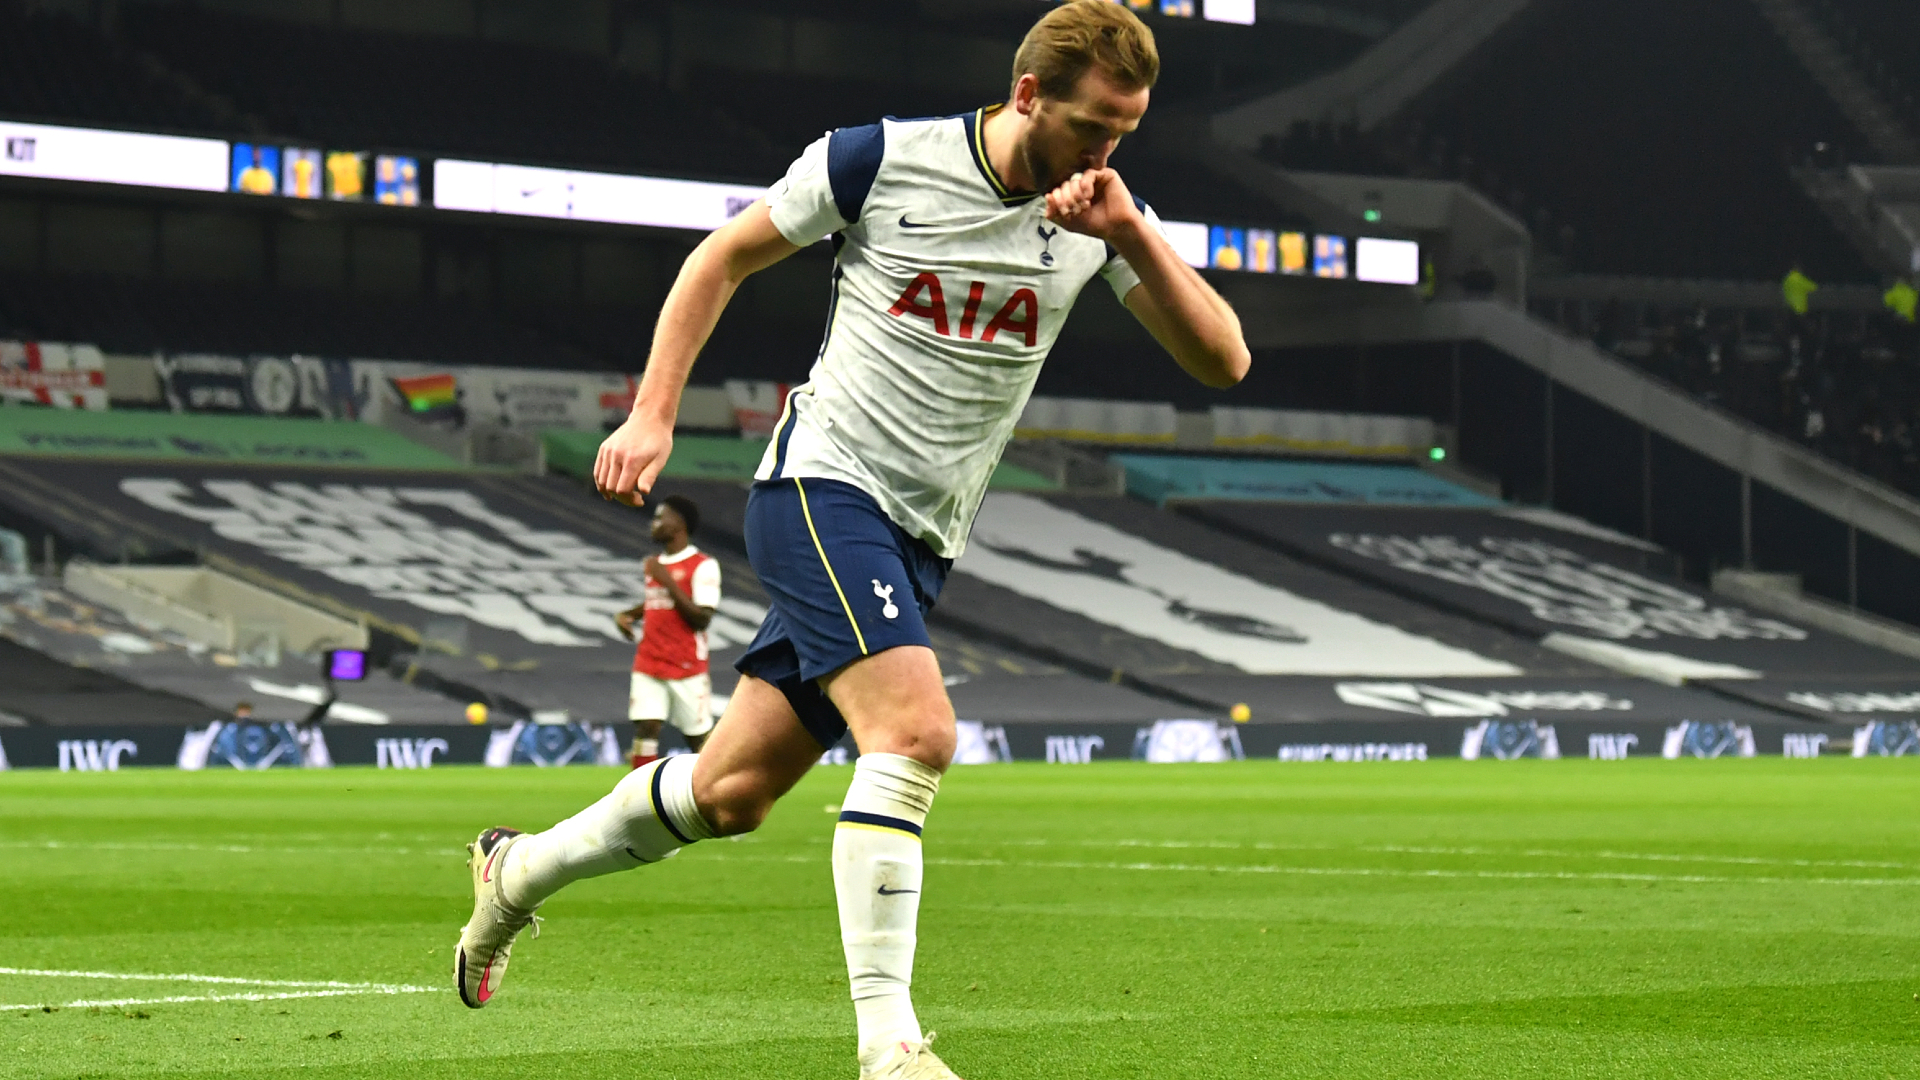 Kane earns Rooney and Henry comparisons from former England and Man Utd defender Ferdinand